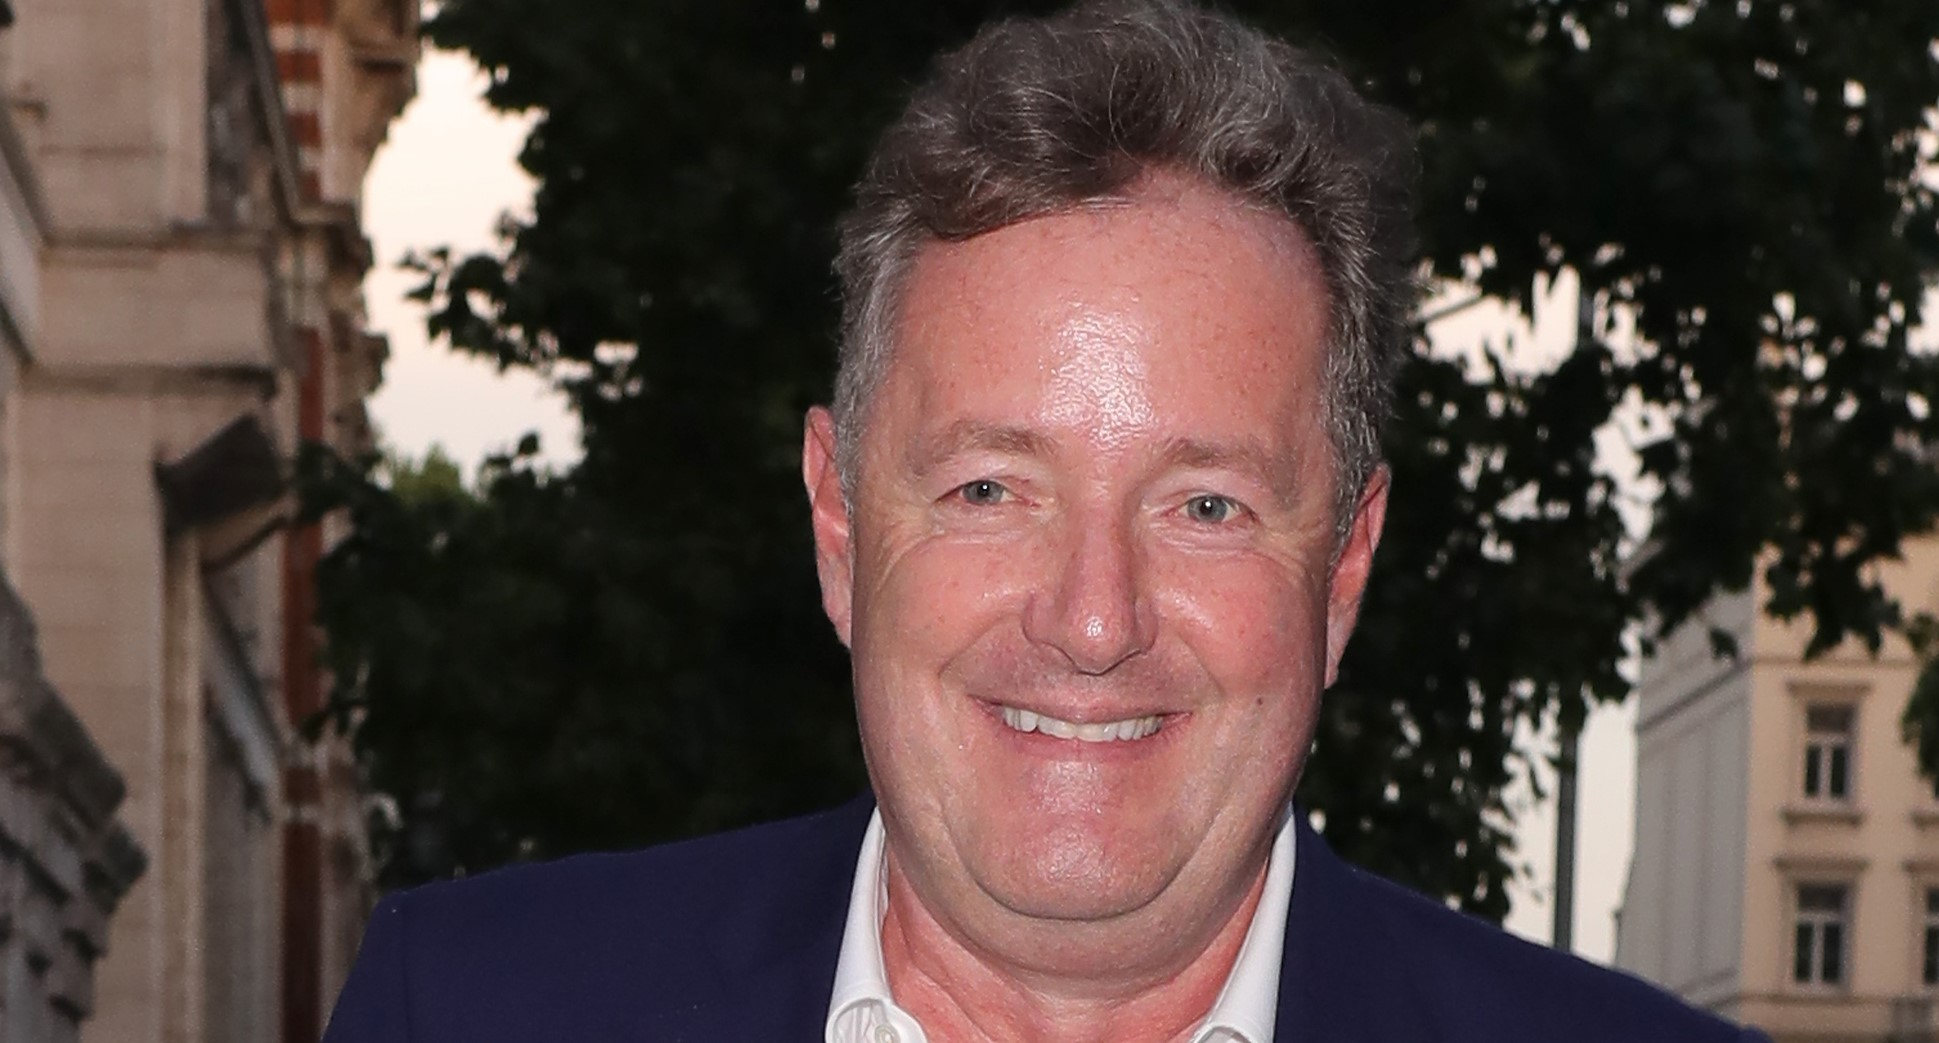 Piers Morgan shares proud photograph as son Stanley finishes drama school